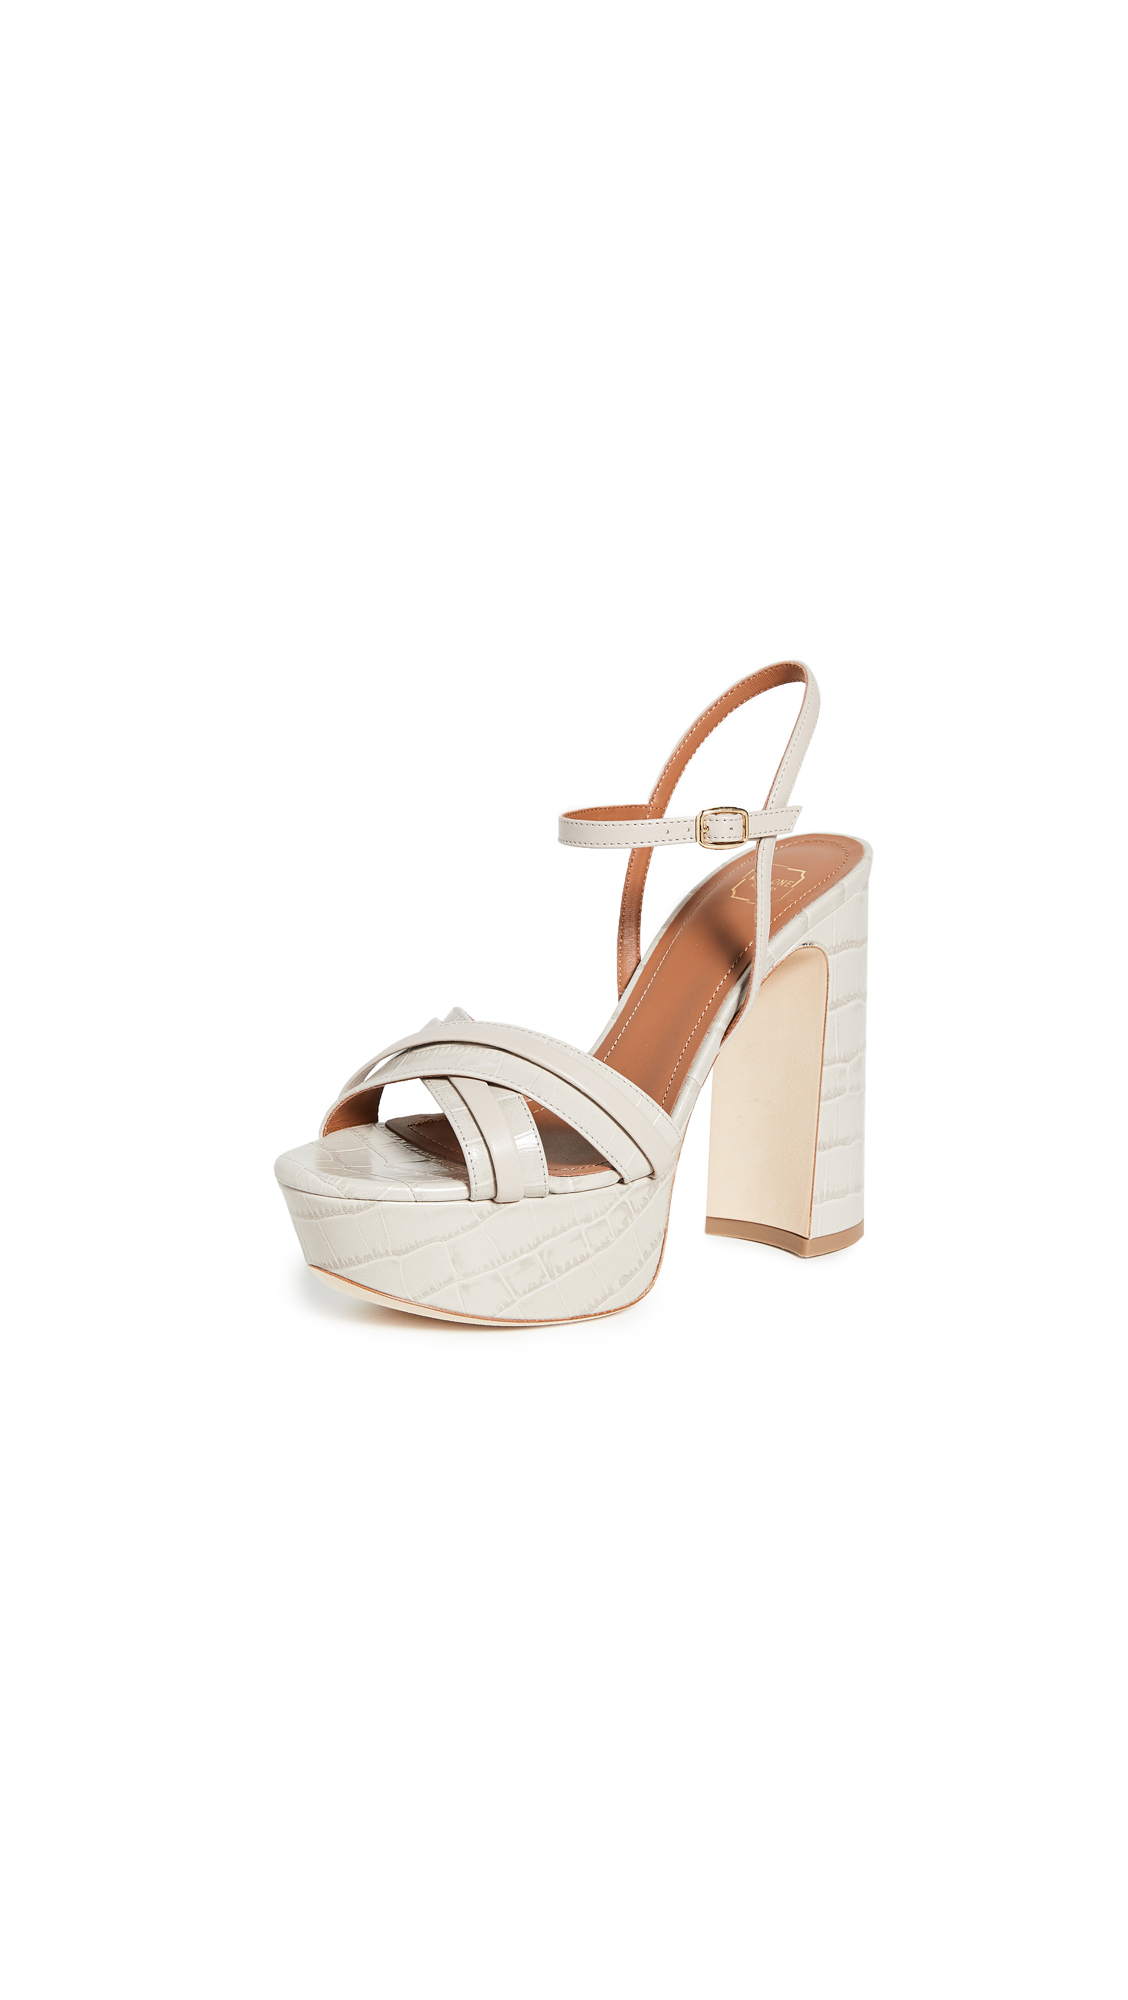 Malone Souliers Mila Sandals 125mm – 60% Off Sale